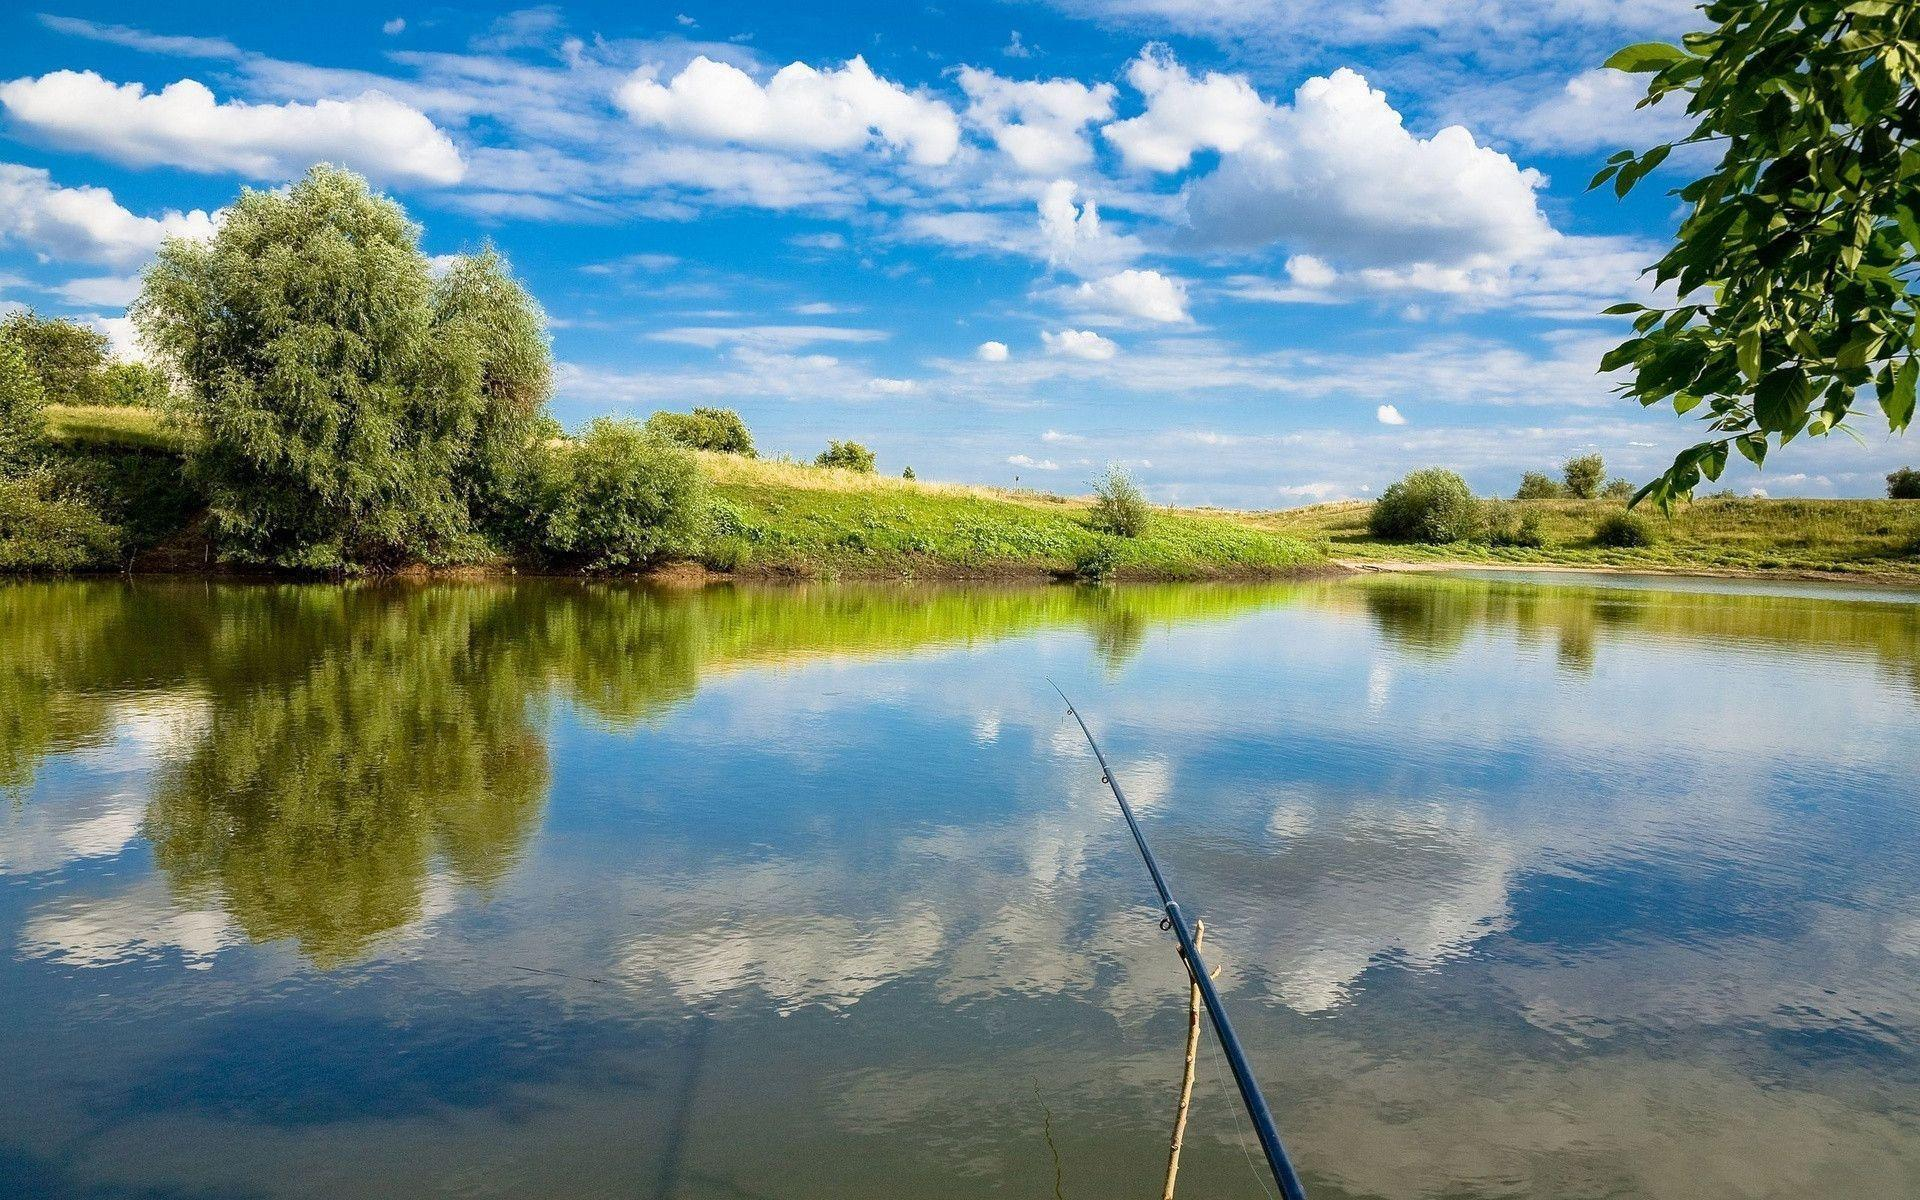 Fishing Backgrounds - Wallpaper Cave